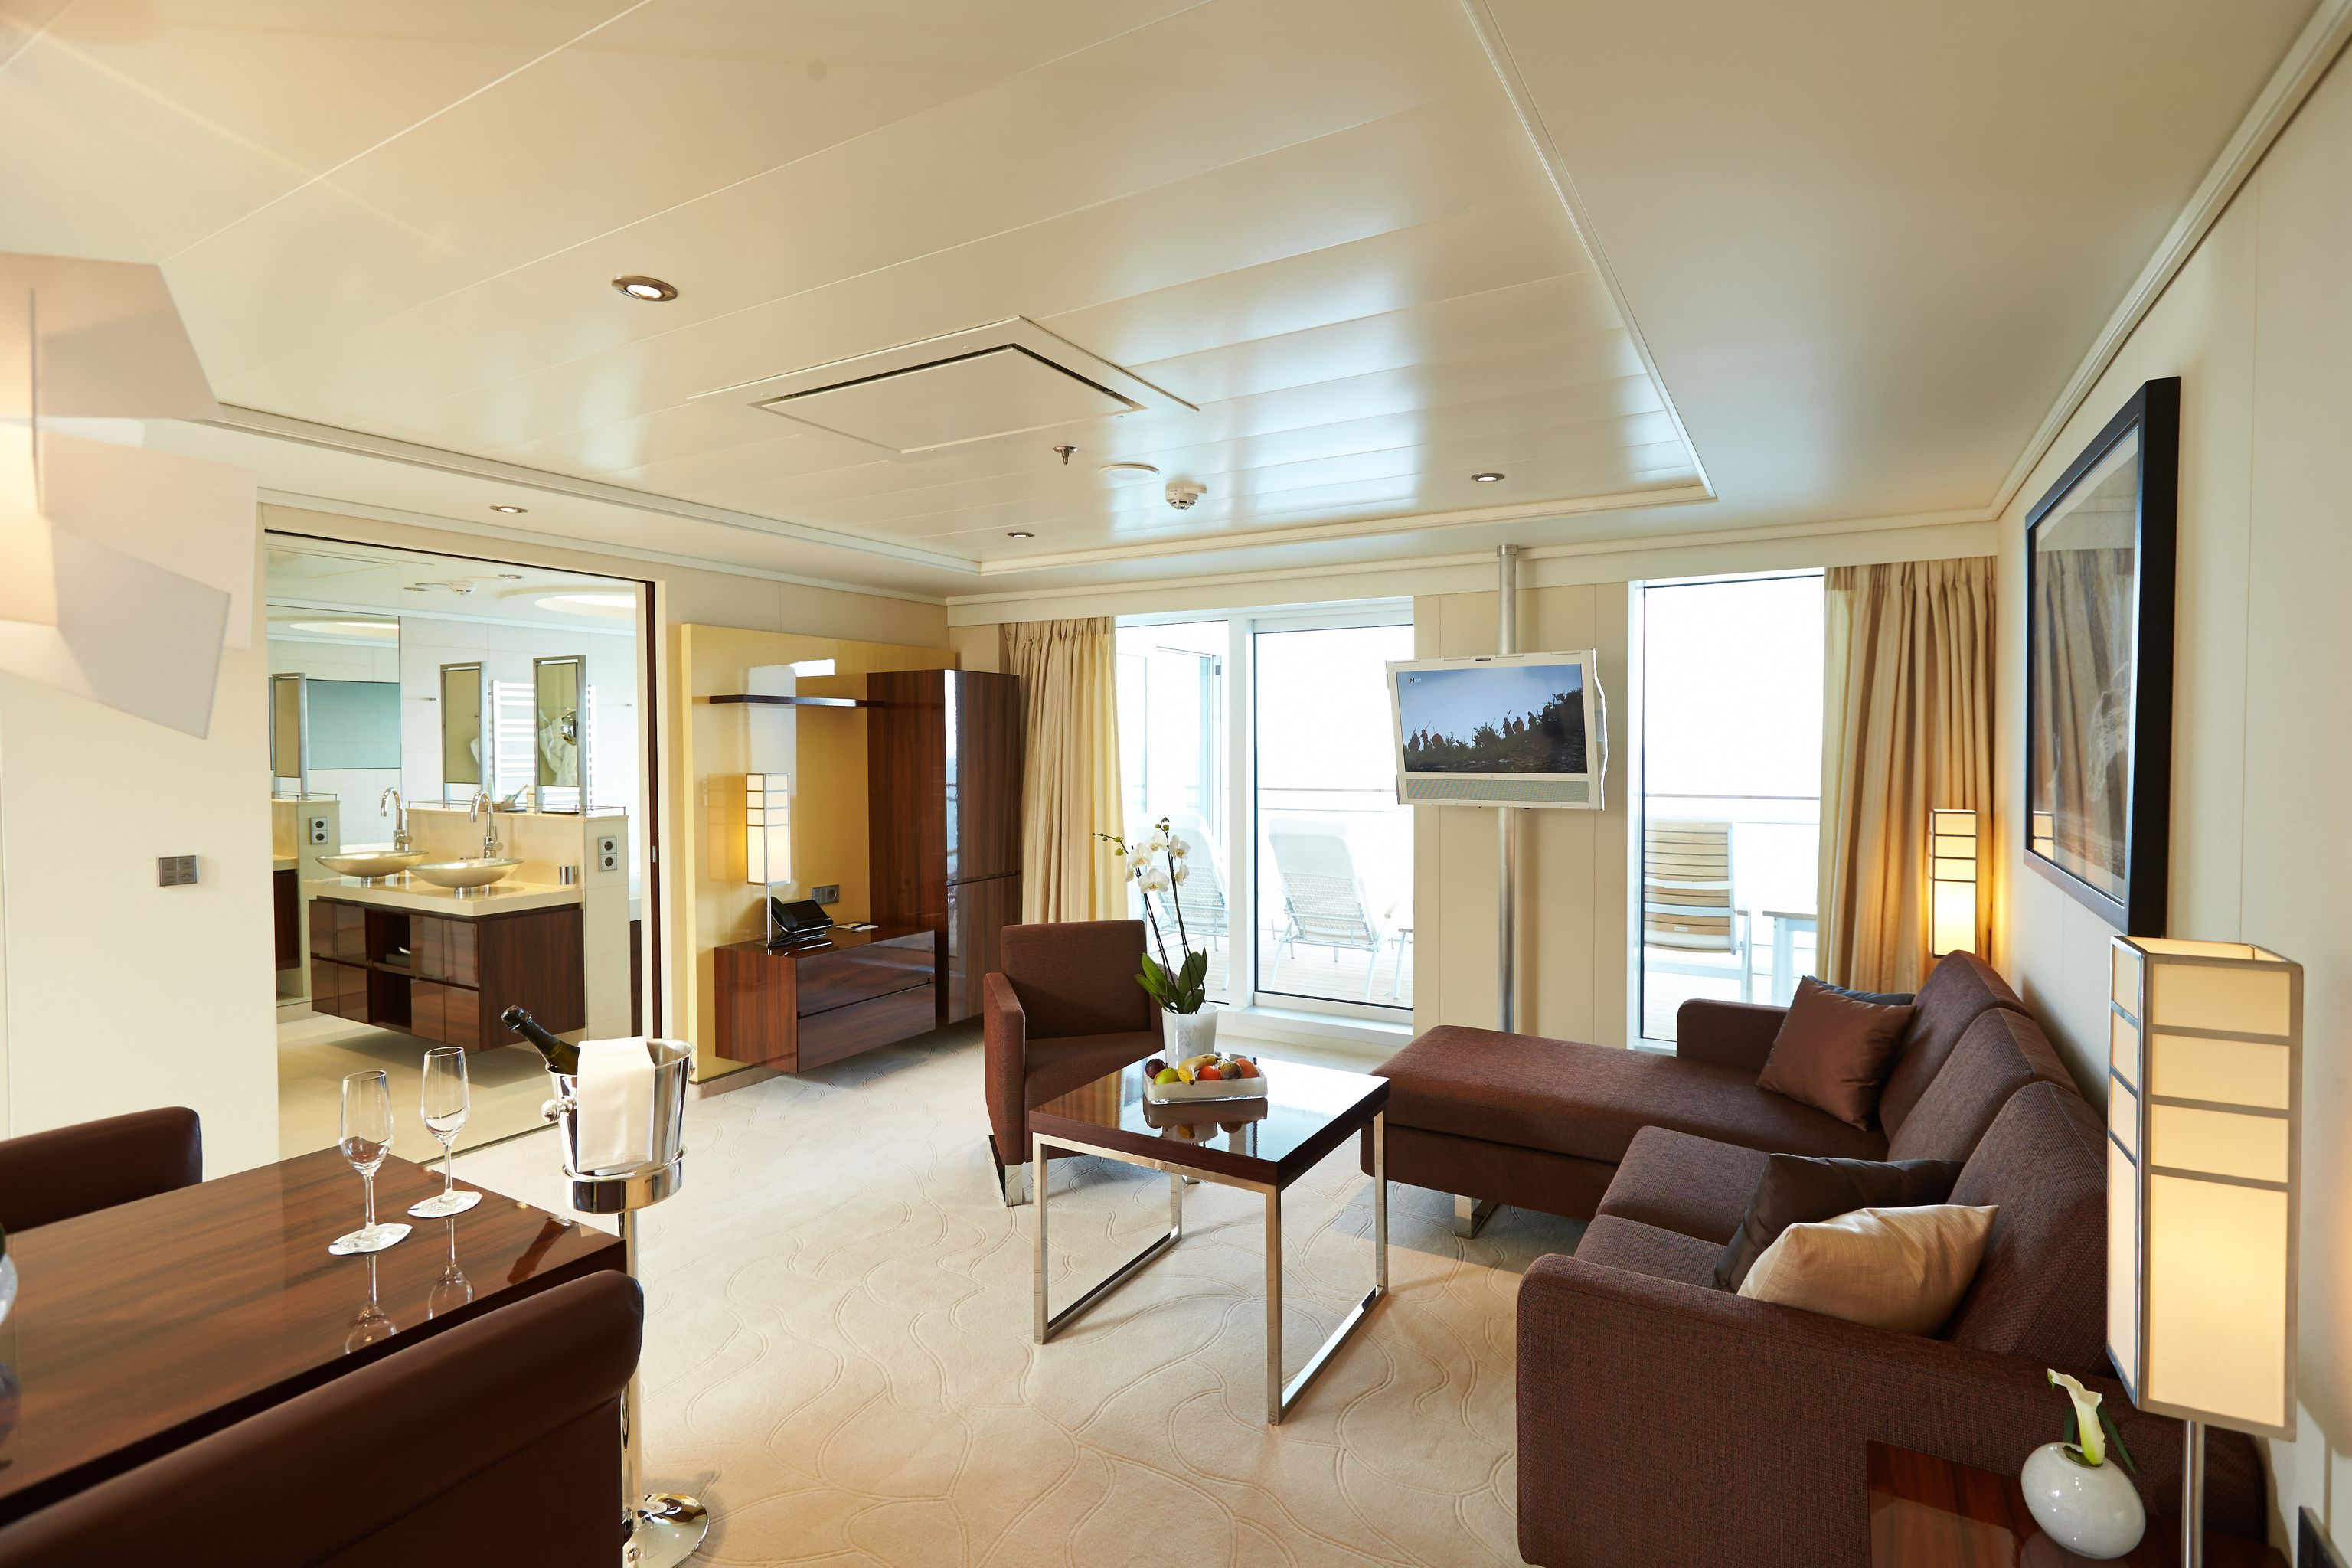 Hapag-Lloyd MS Europa 2 Accommodation Grand Penthouse Suite.jpg